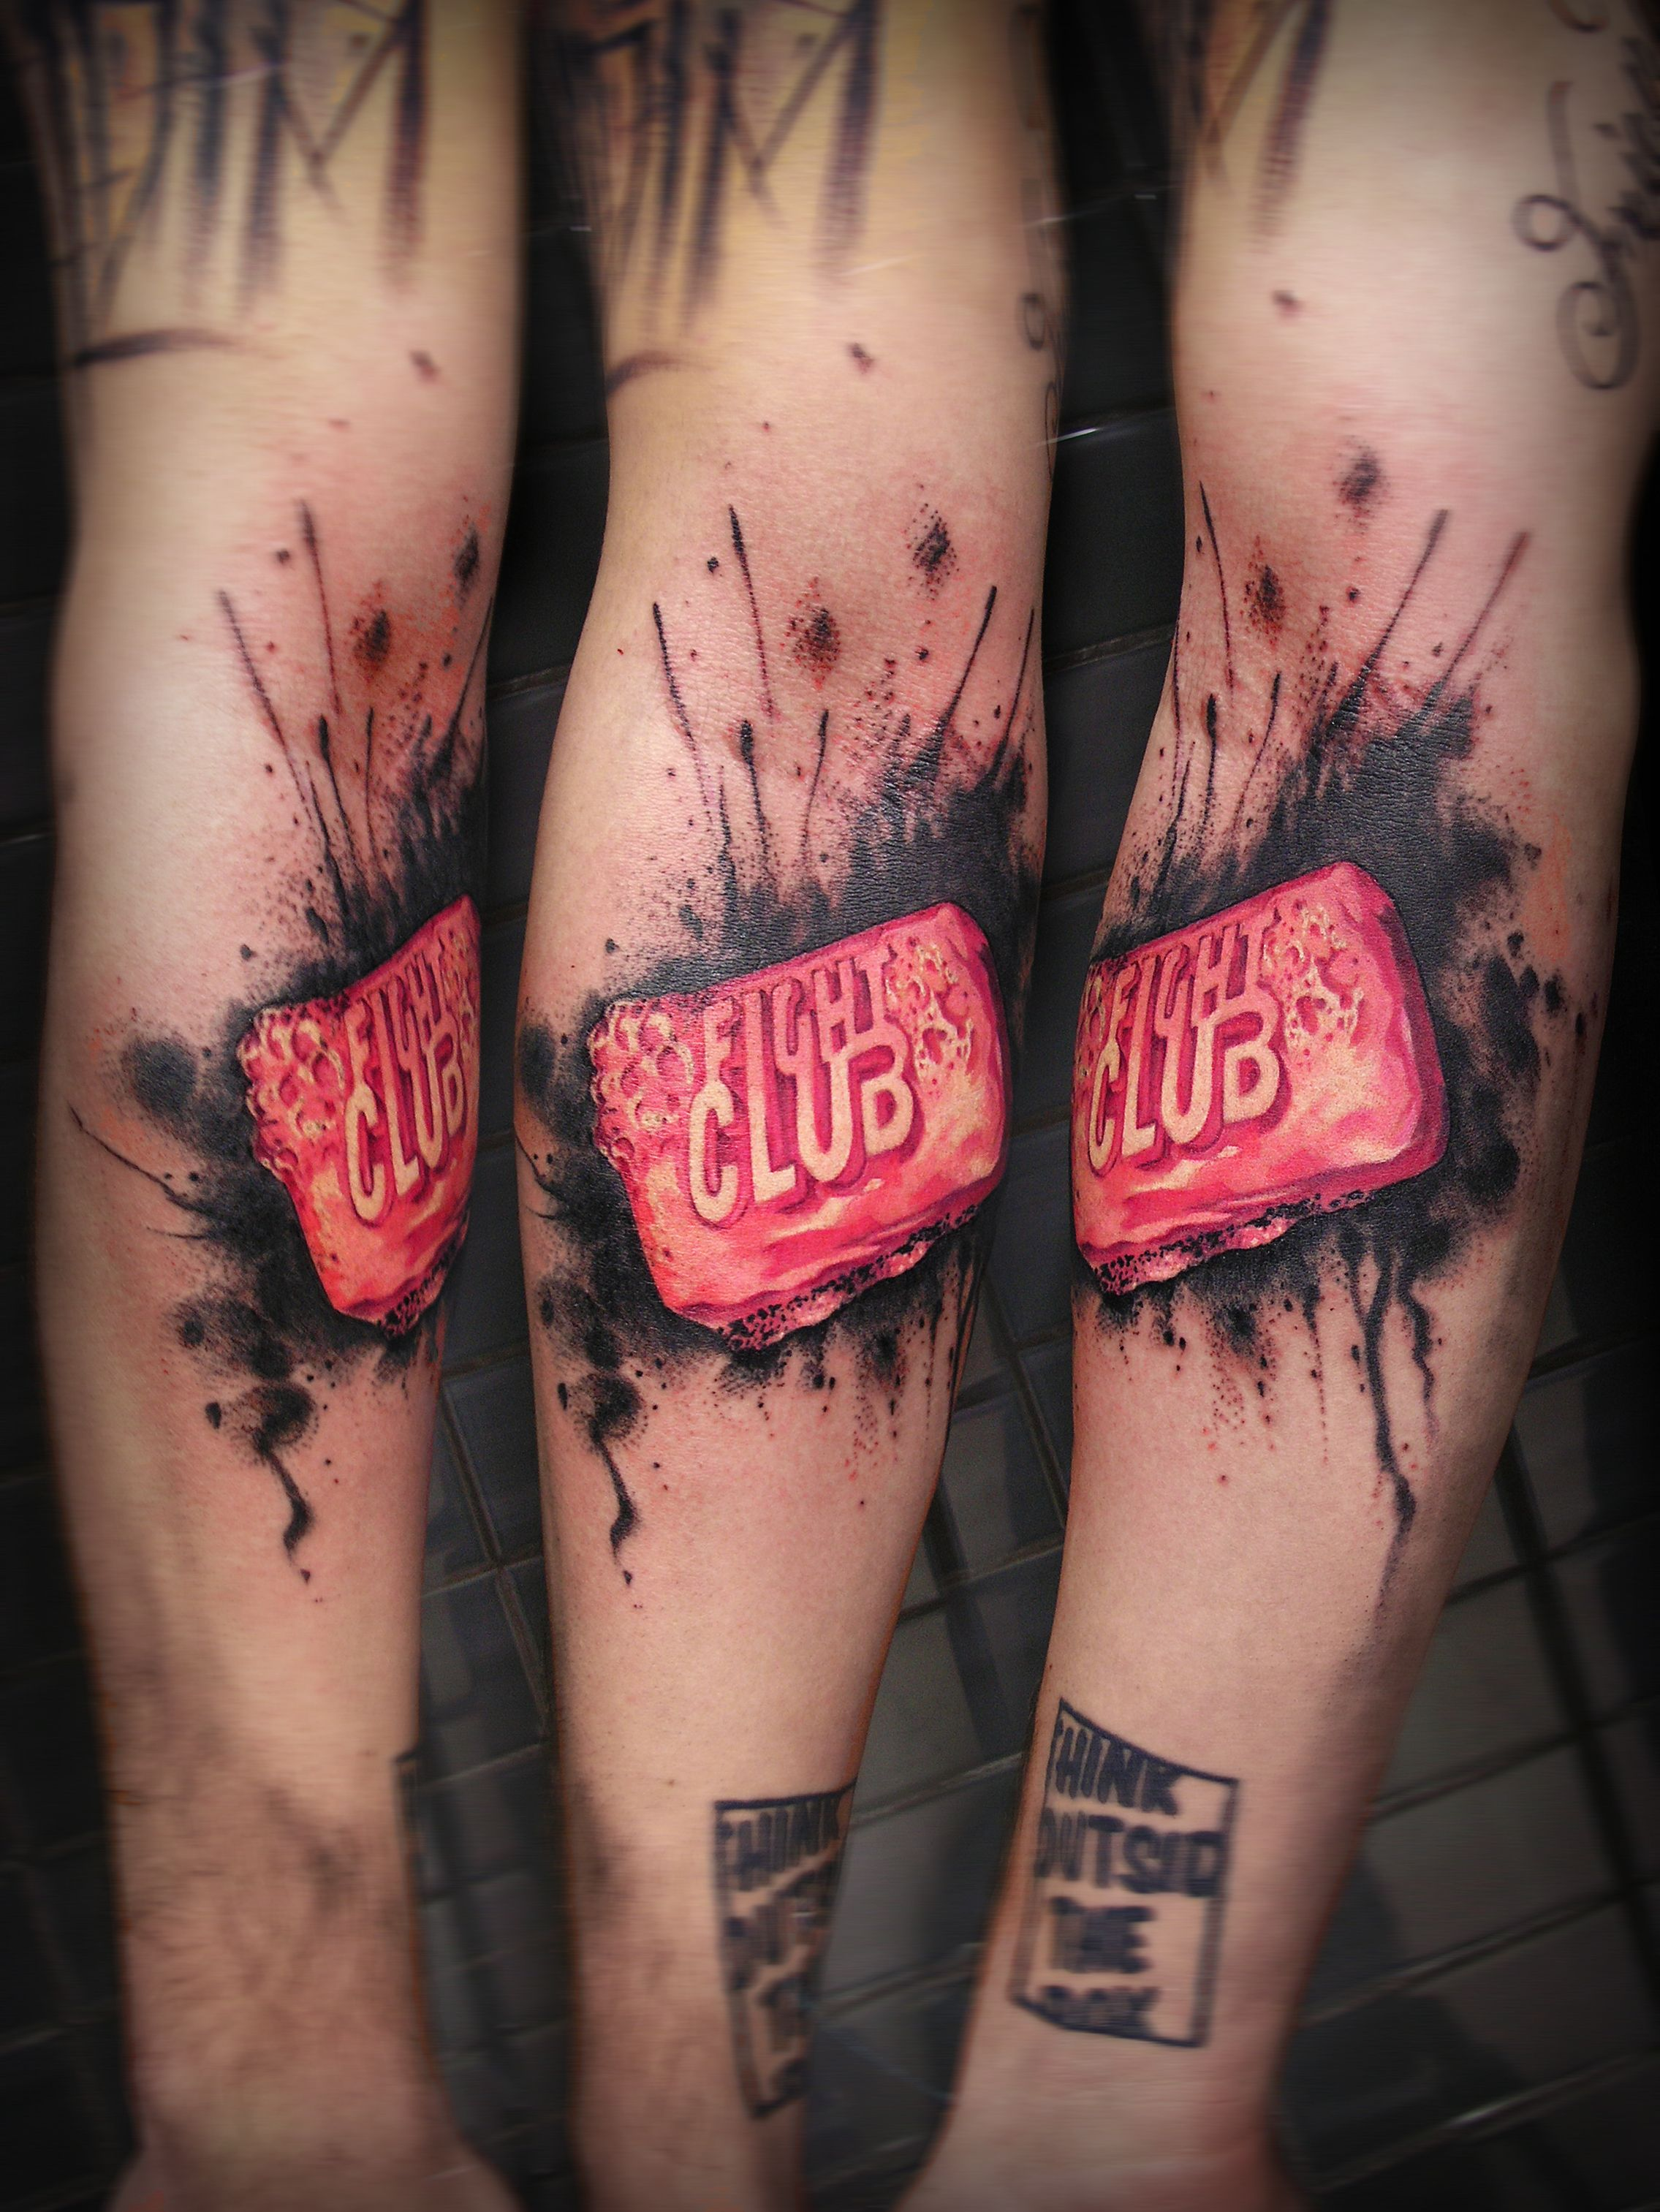 Fight Club tattoo, by Uncl Paul, guest tattoo artist at Black Onyx Tattoo Studio (N7 8GR, London) 11th-20th August 2014.